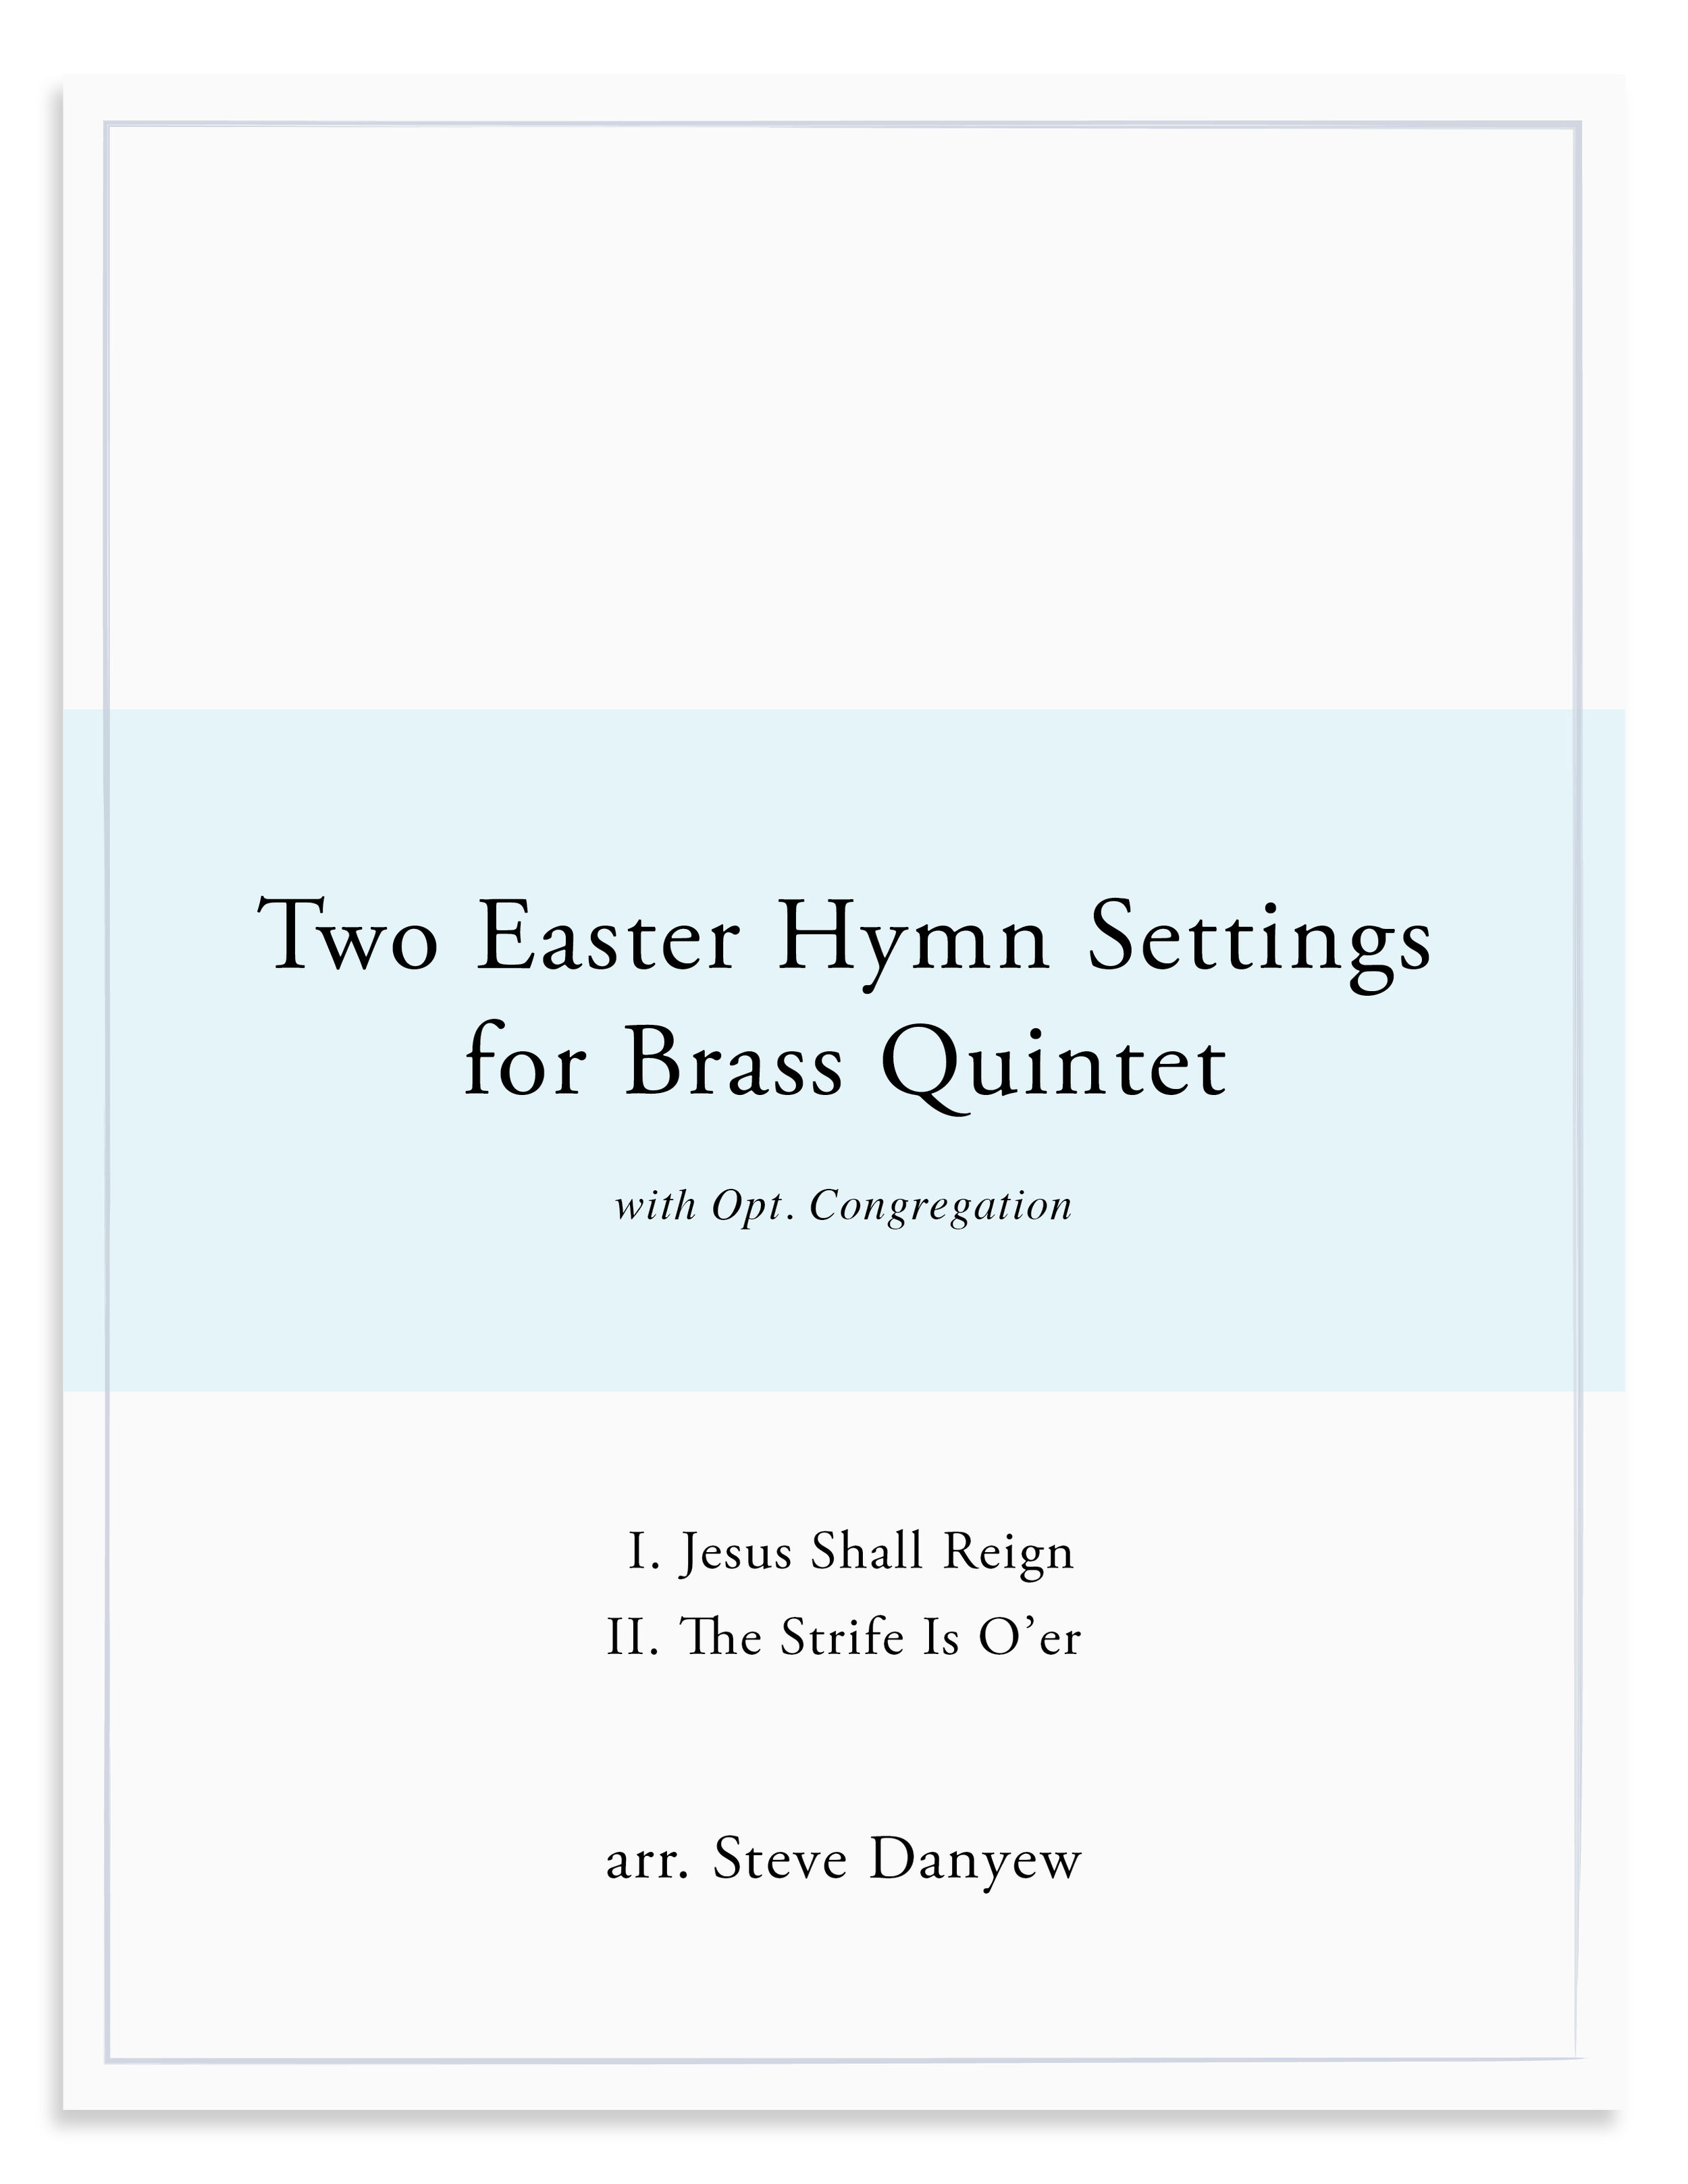 Two Easter Hymn Settings for Brass Quintet